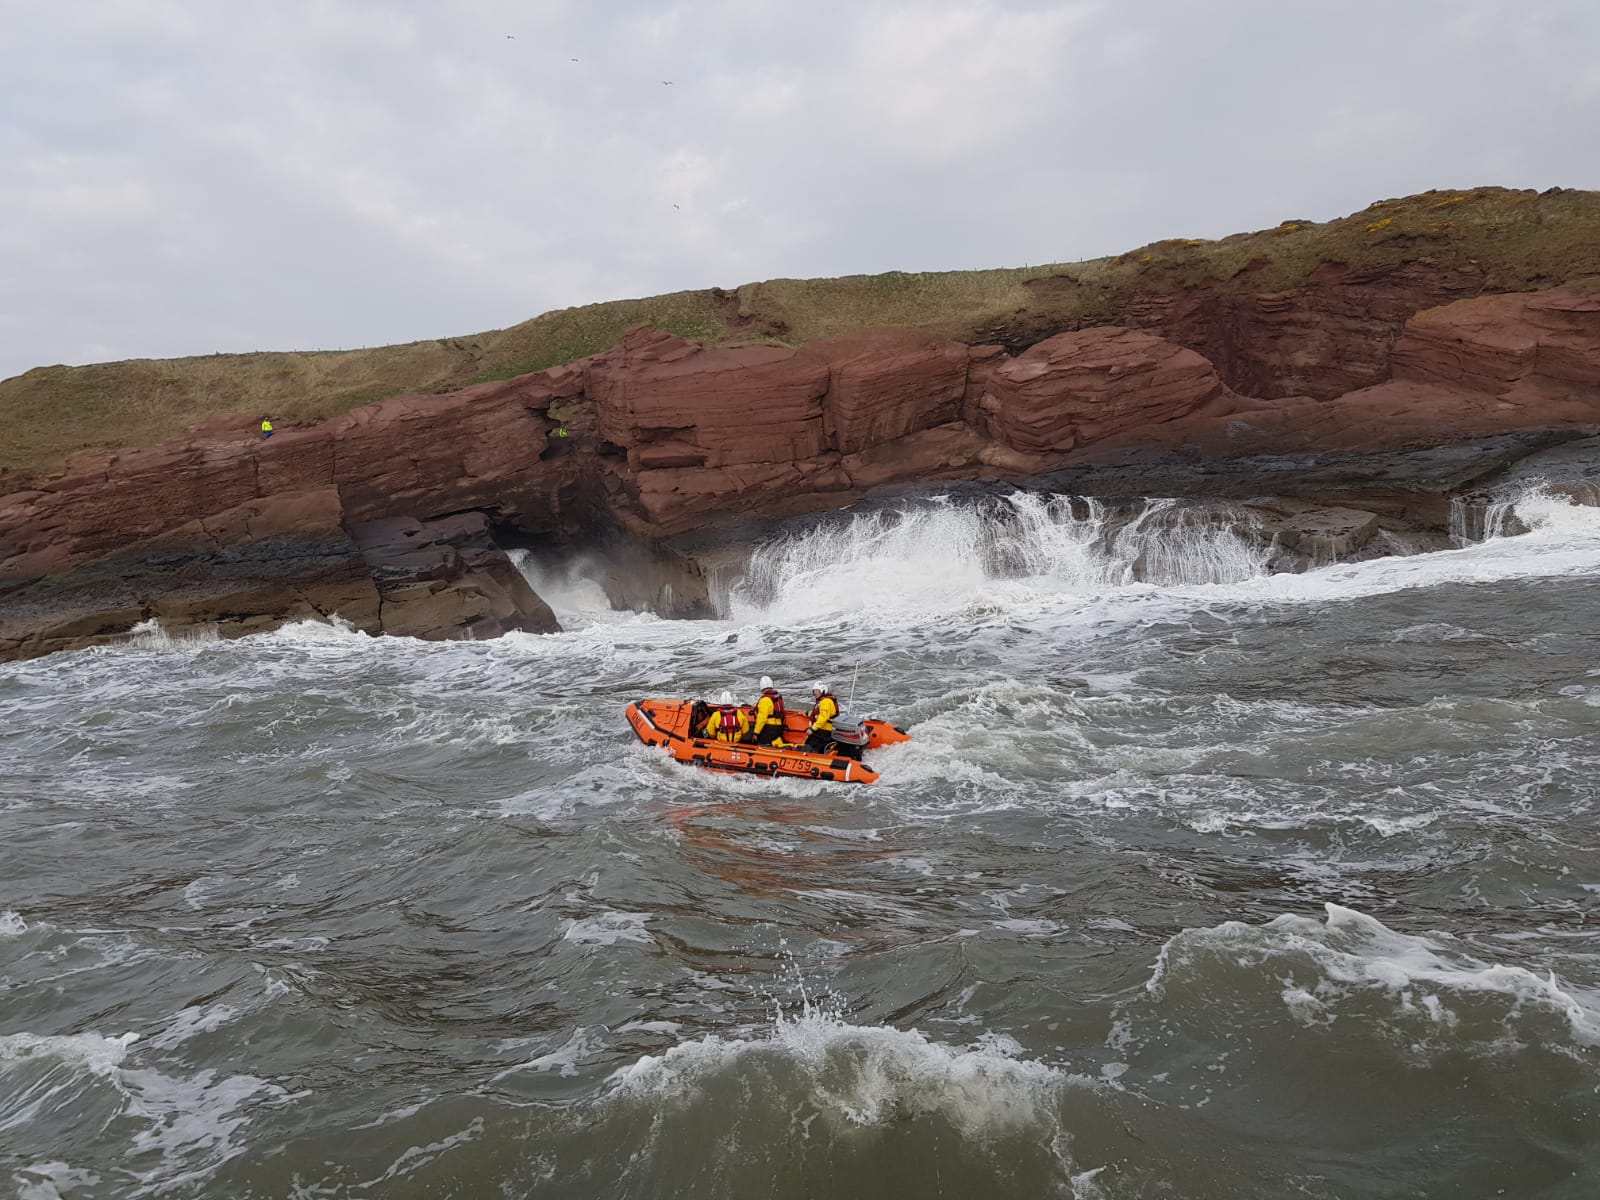 Arbroath ILB during cliff search